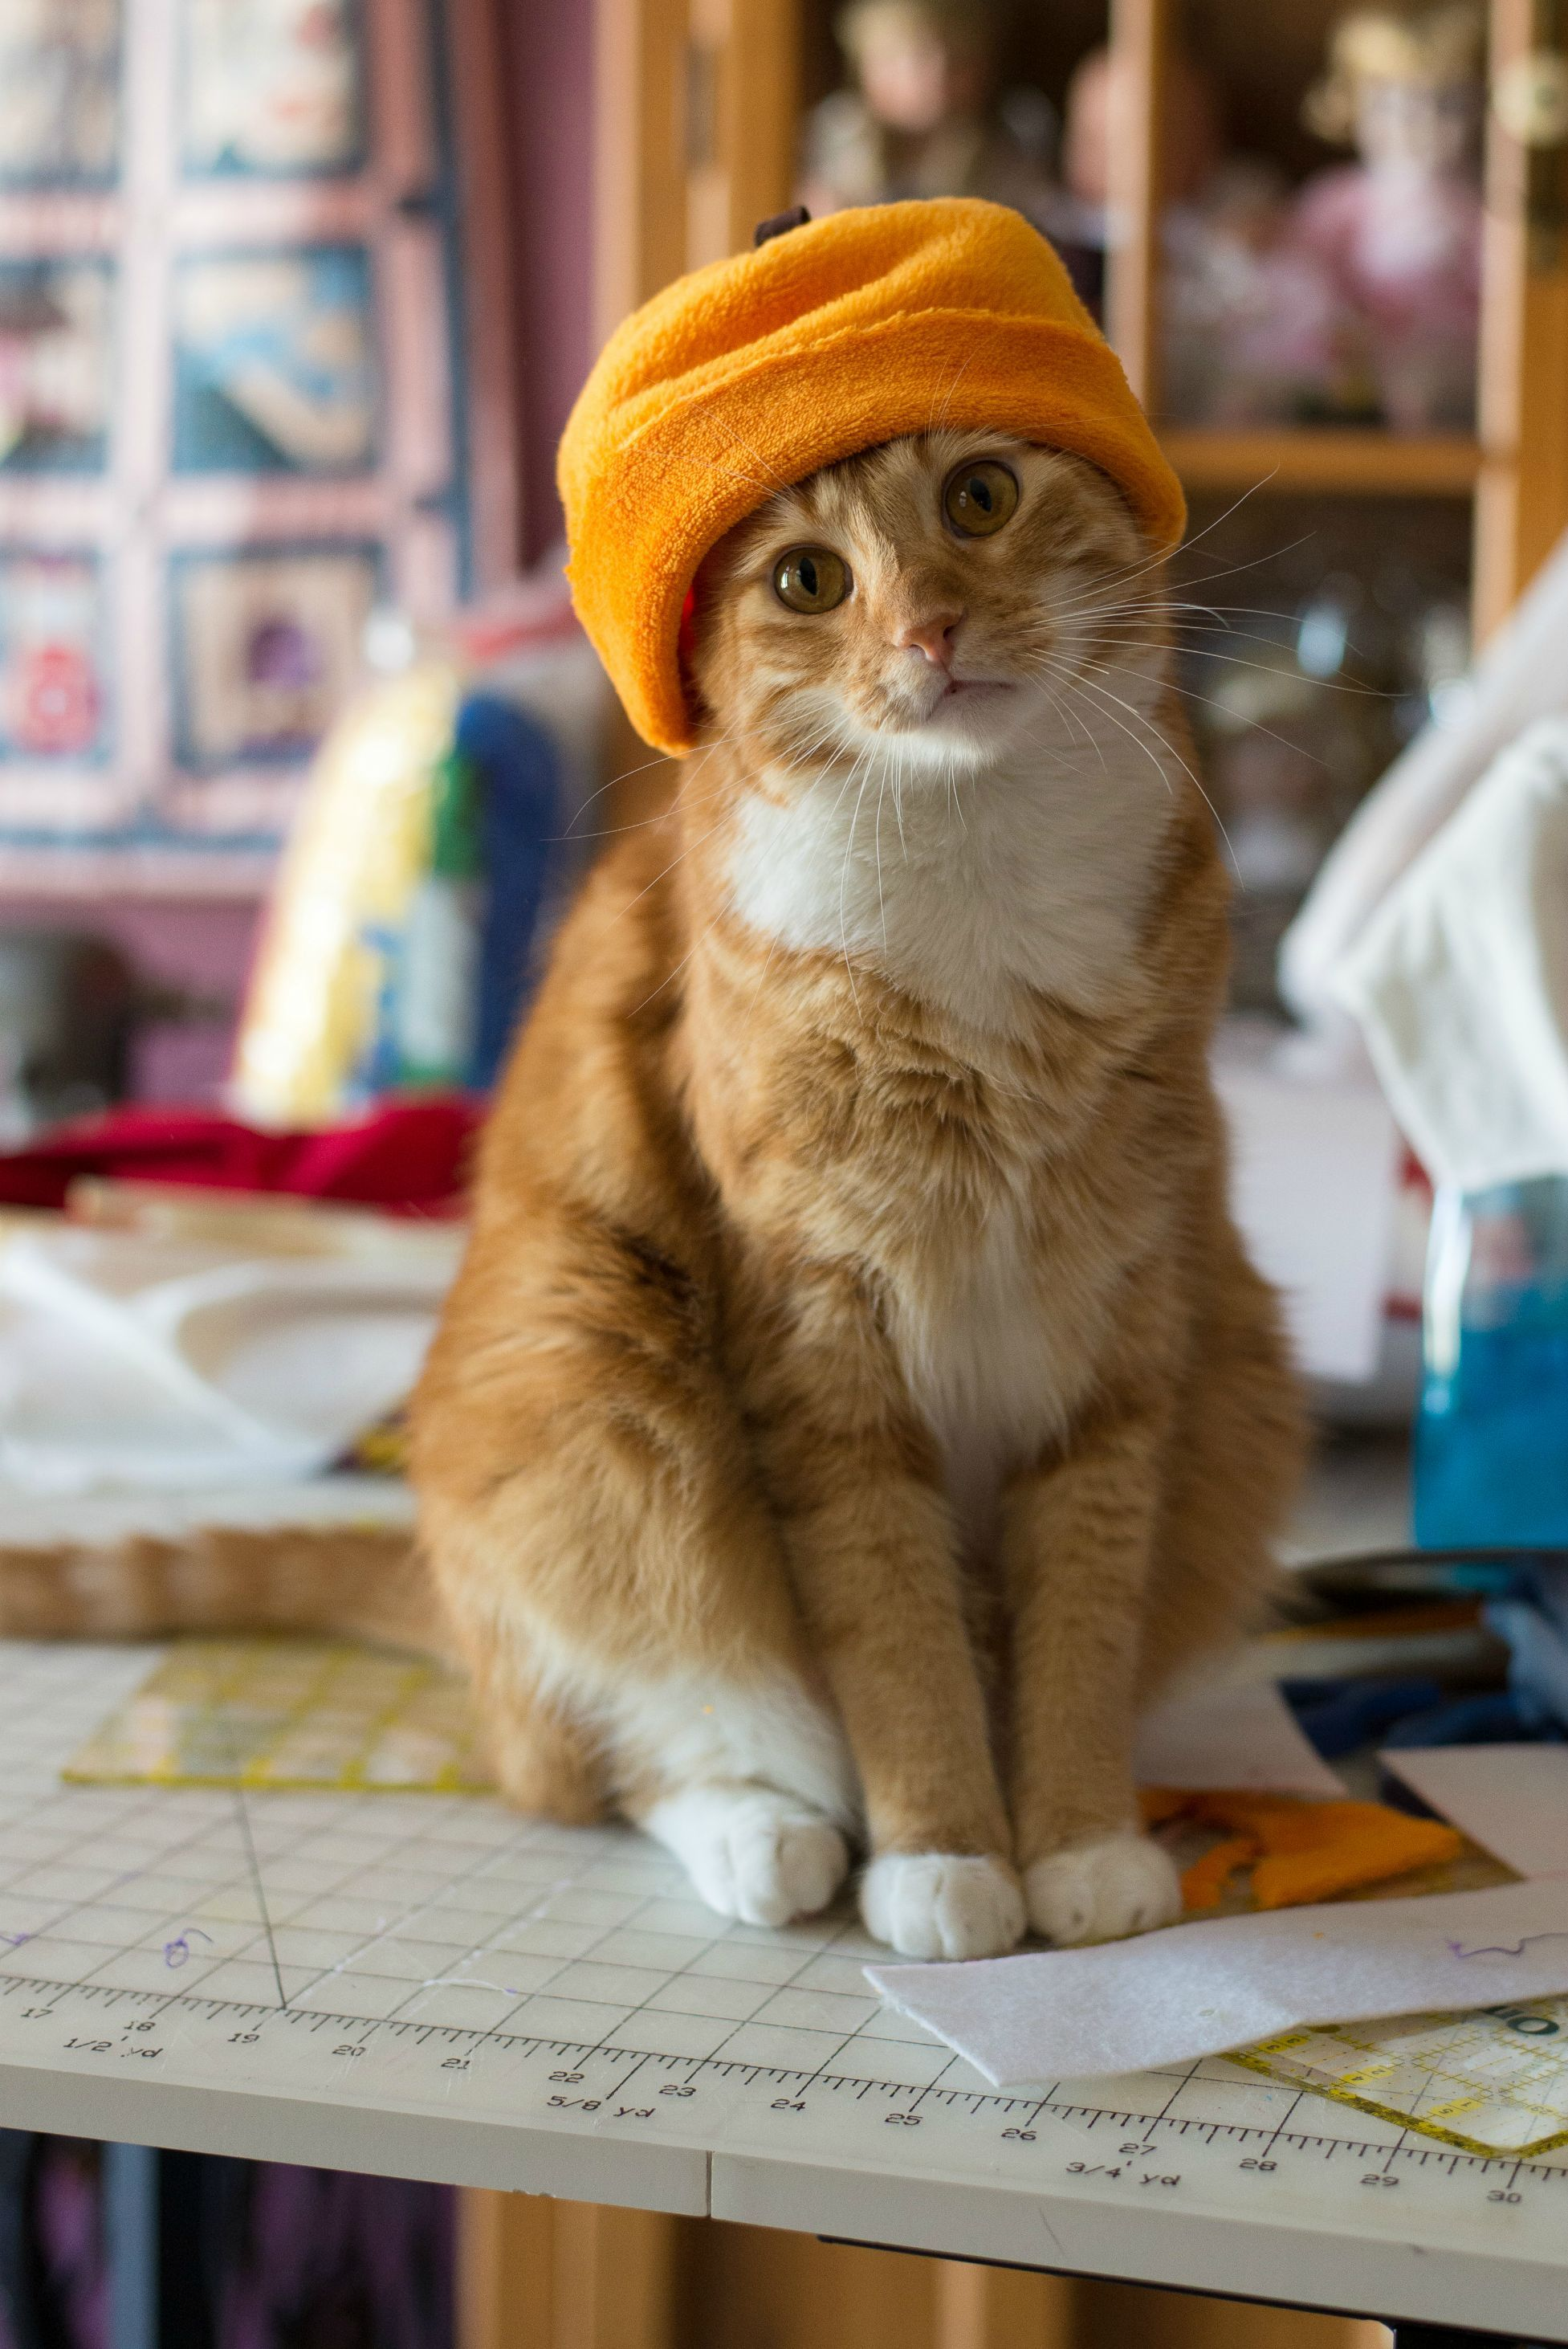 We put an orange hat on Sam for October. He looked a